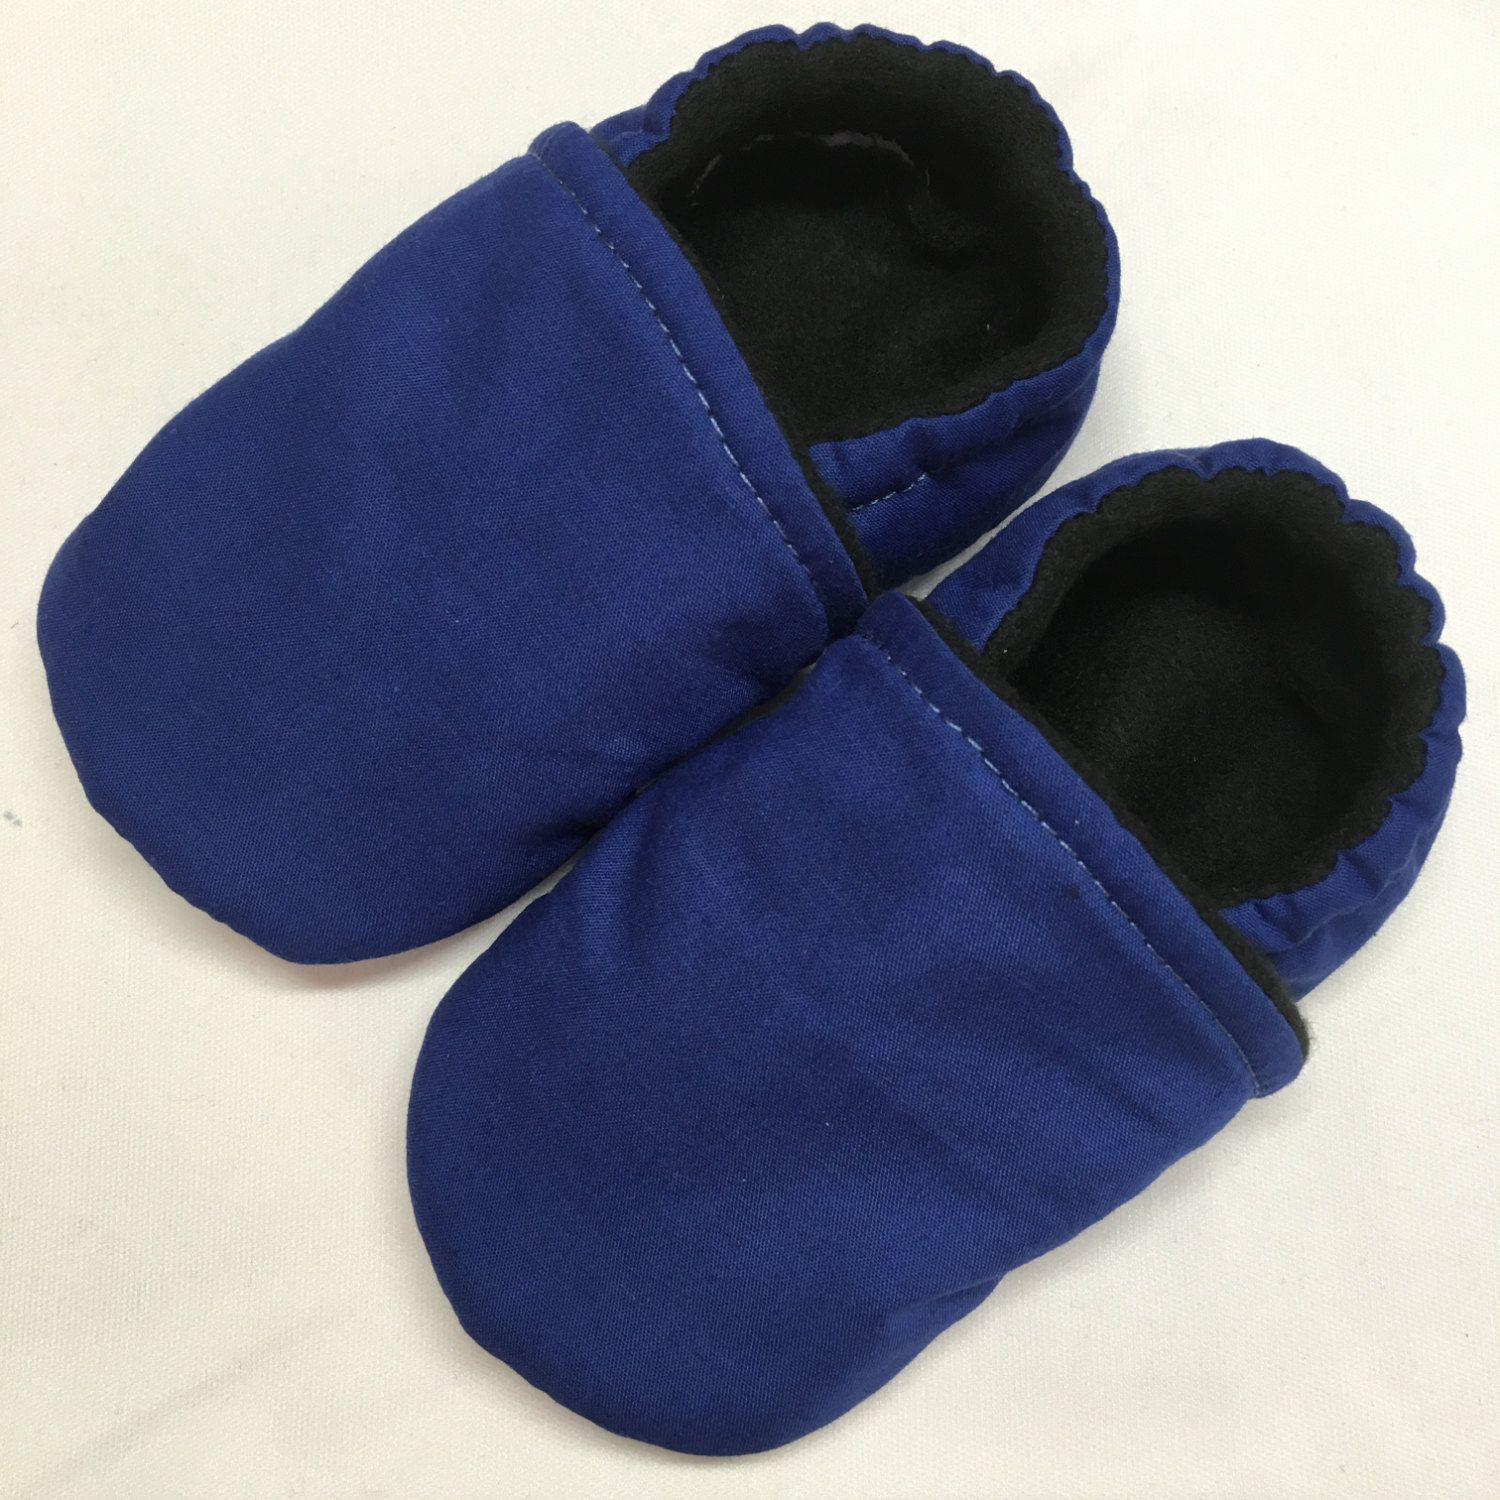 Extra Wide Navy Blue Soft Baby Walking Shoes For Chubby Feet Baby